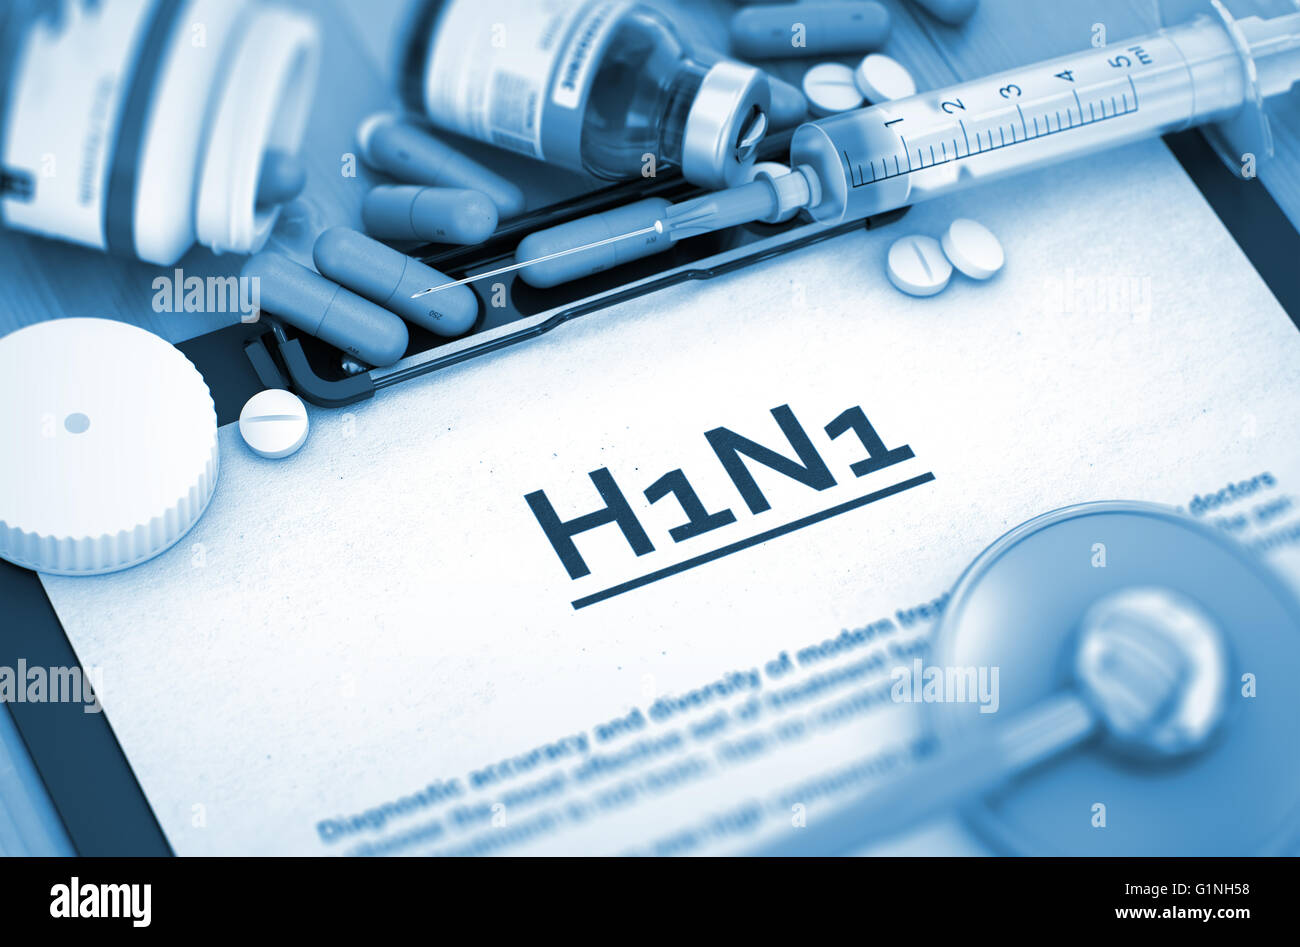 H1N1 Diagnosis. Medical Concept. - Stock Image